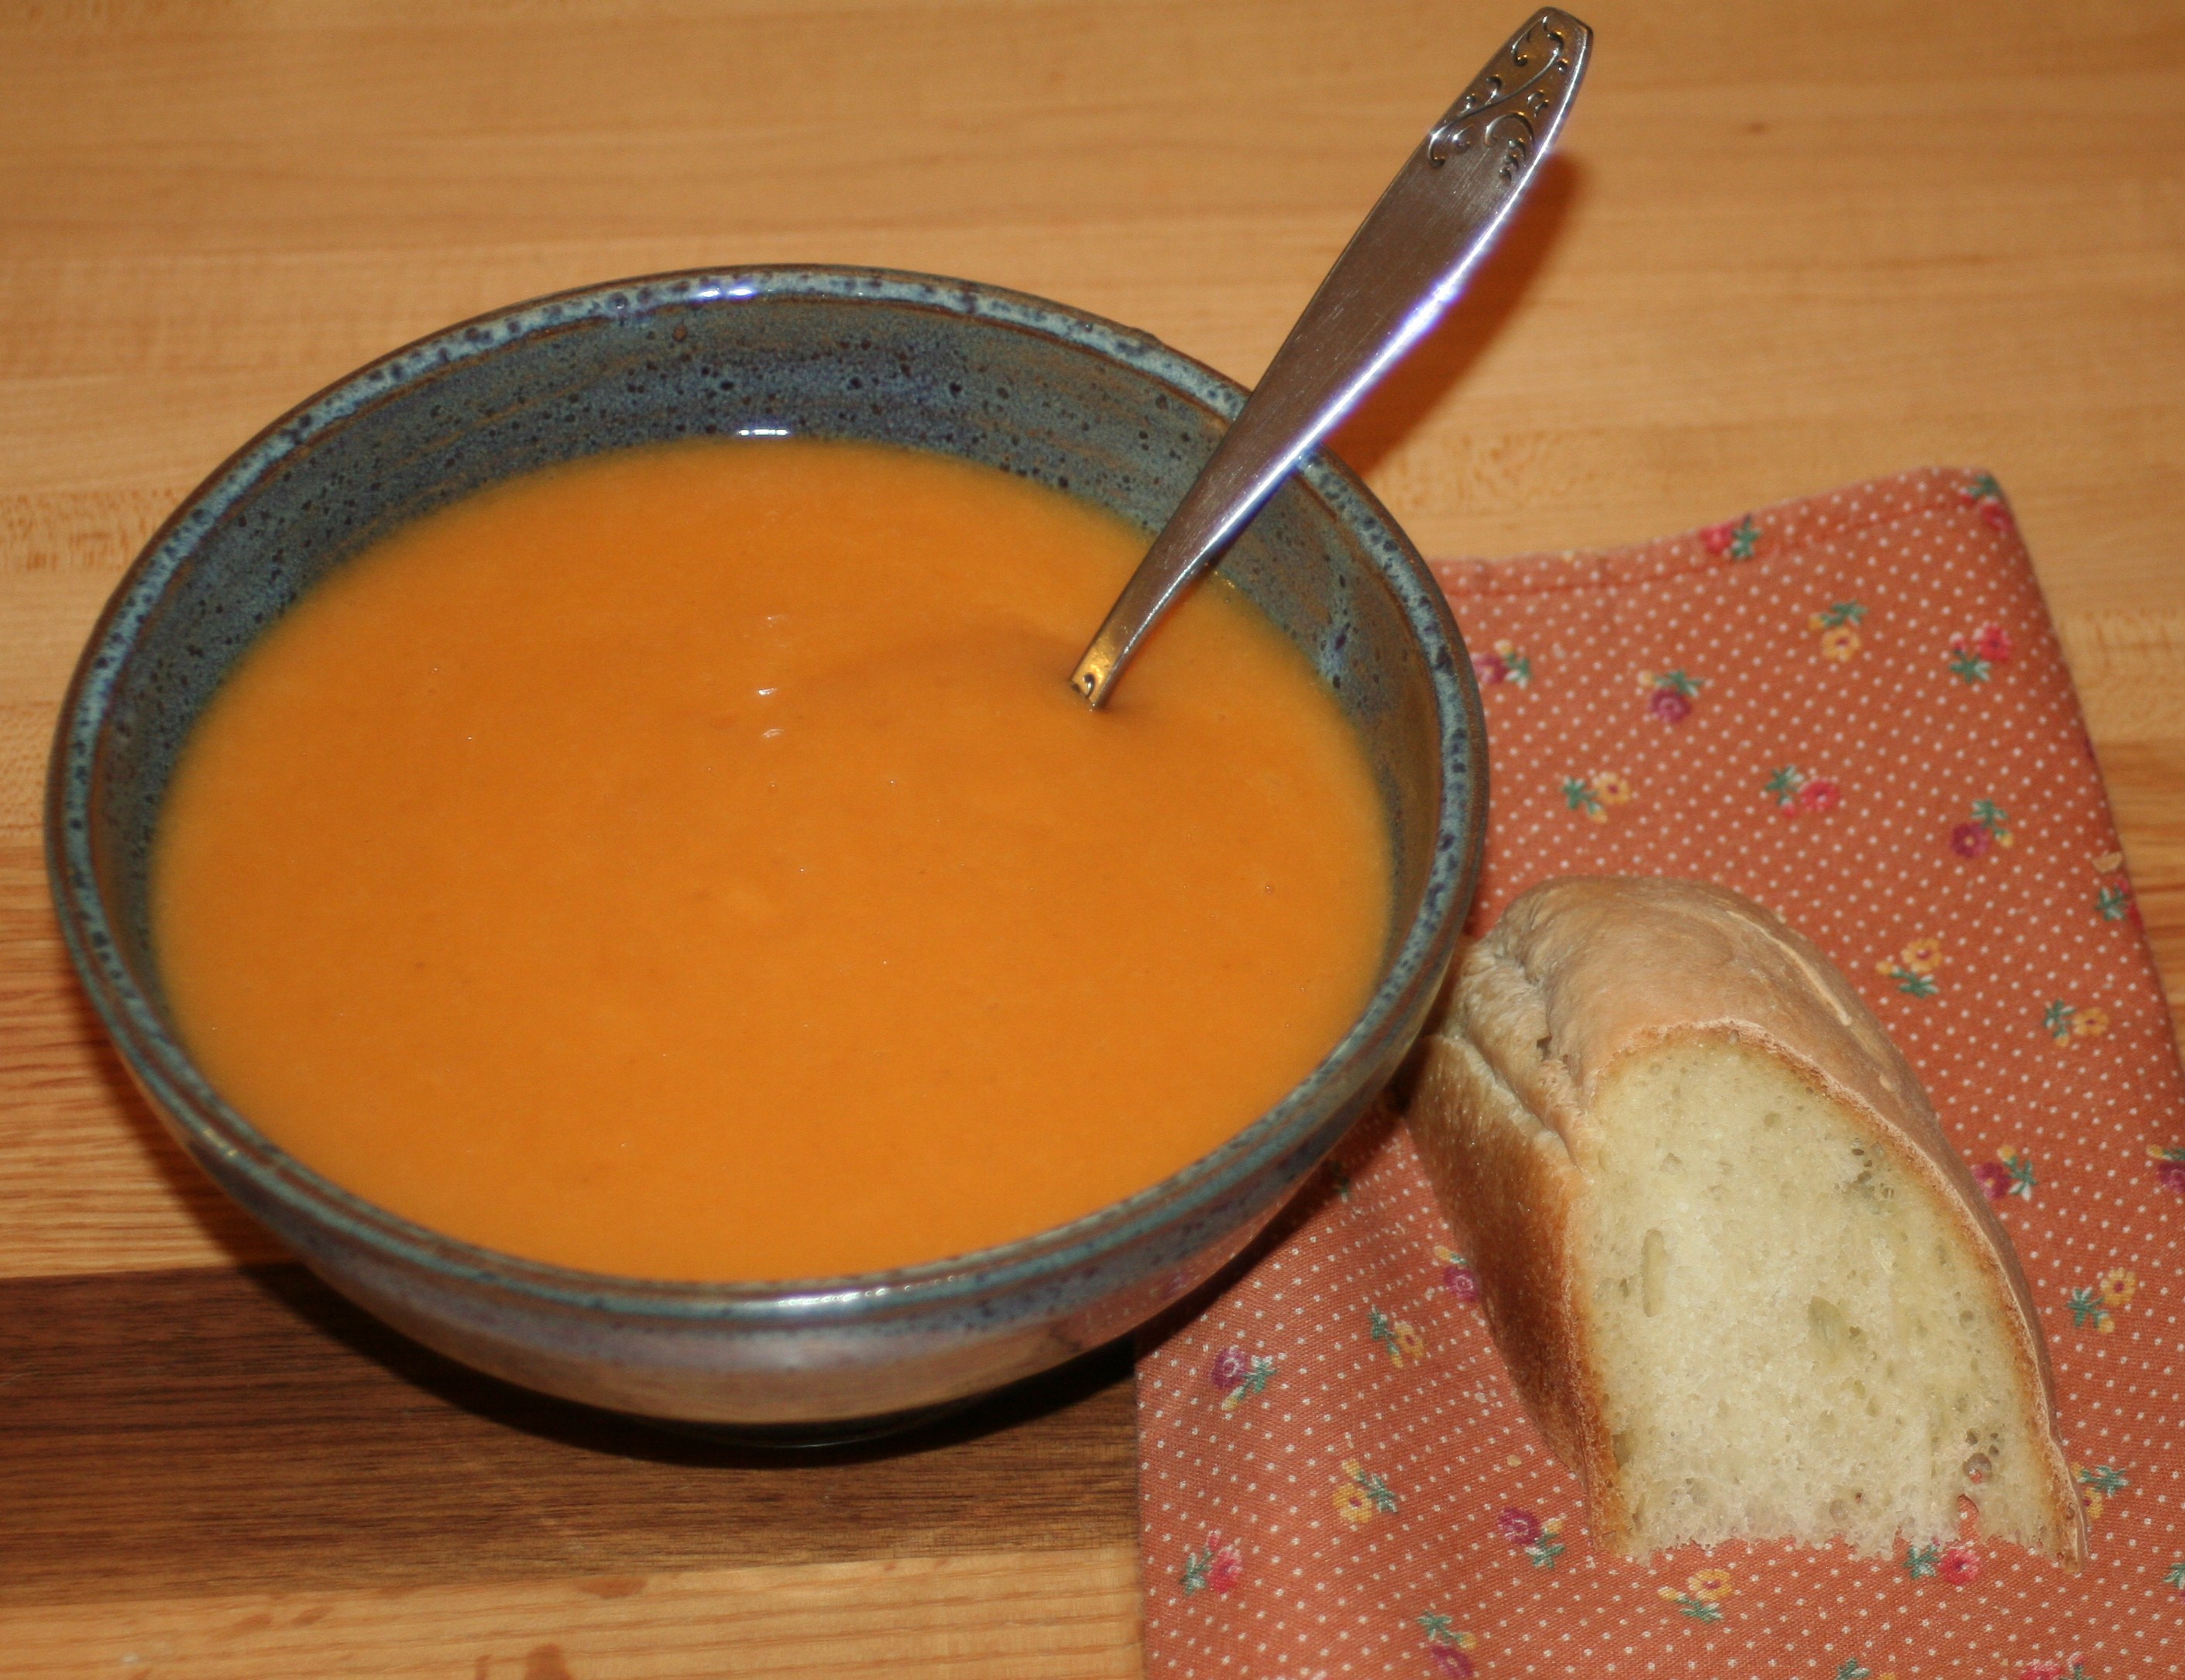 Carrot soup and crusty bread